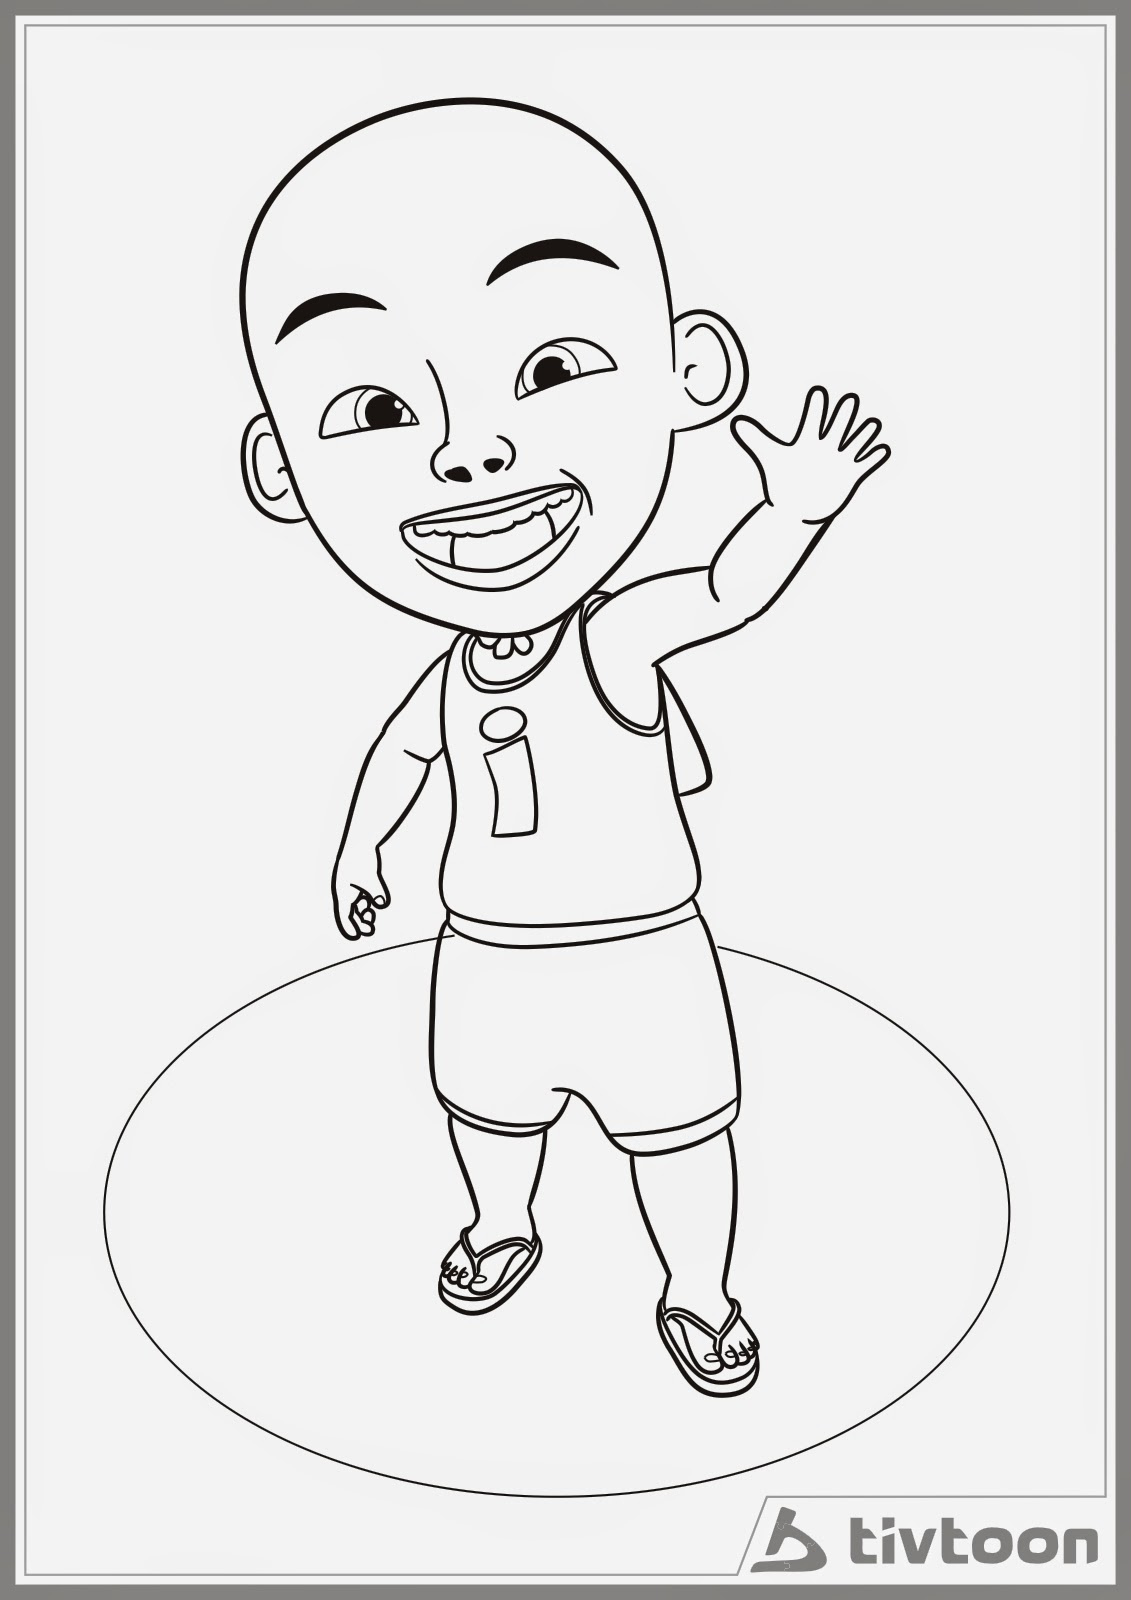 Hd Wallpapers Coloring Pages Upin Dan Ipin Epb Nbnb Info